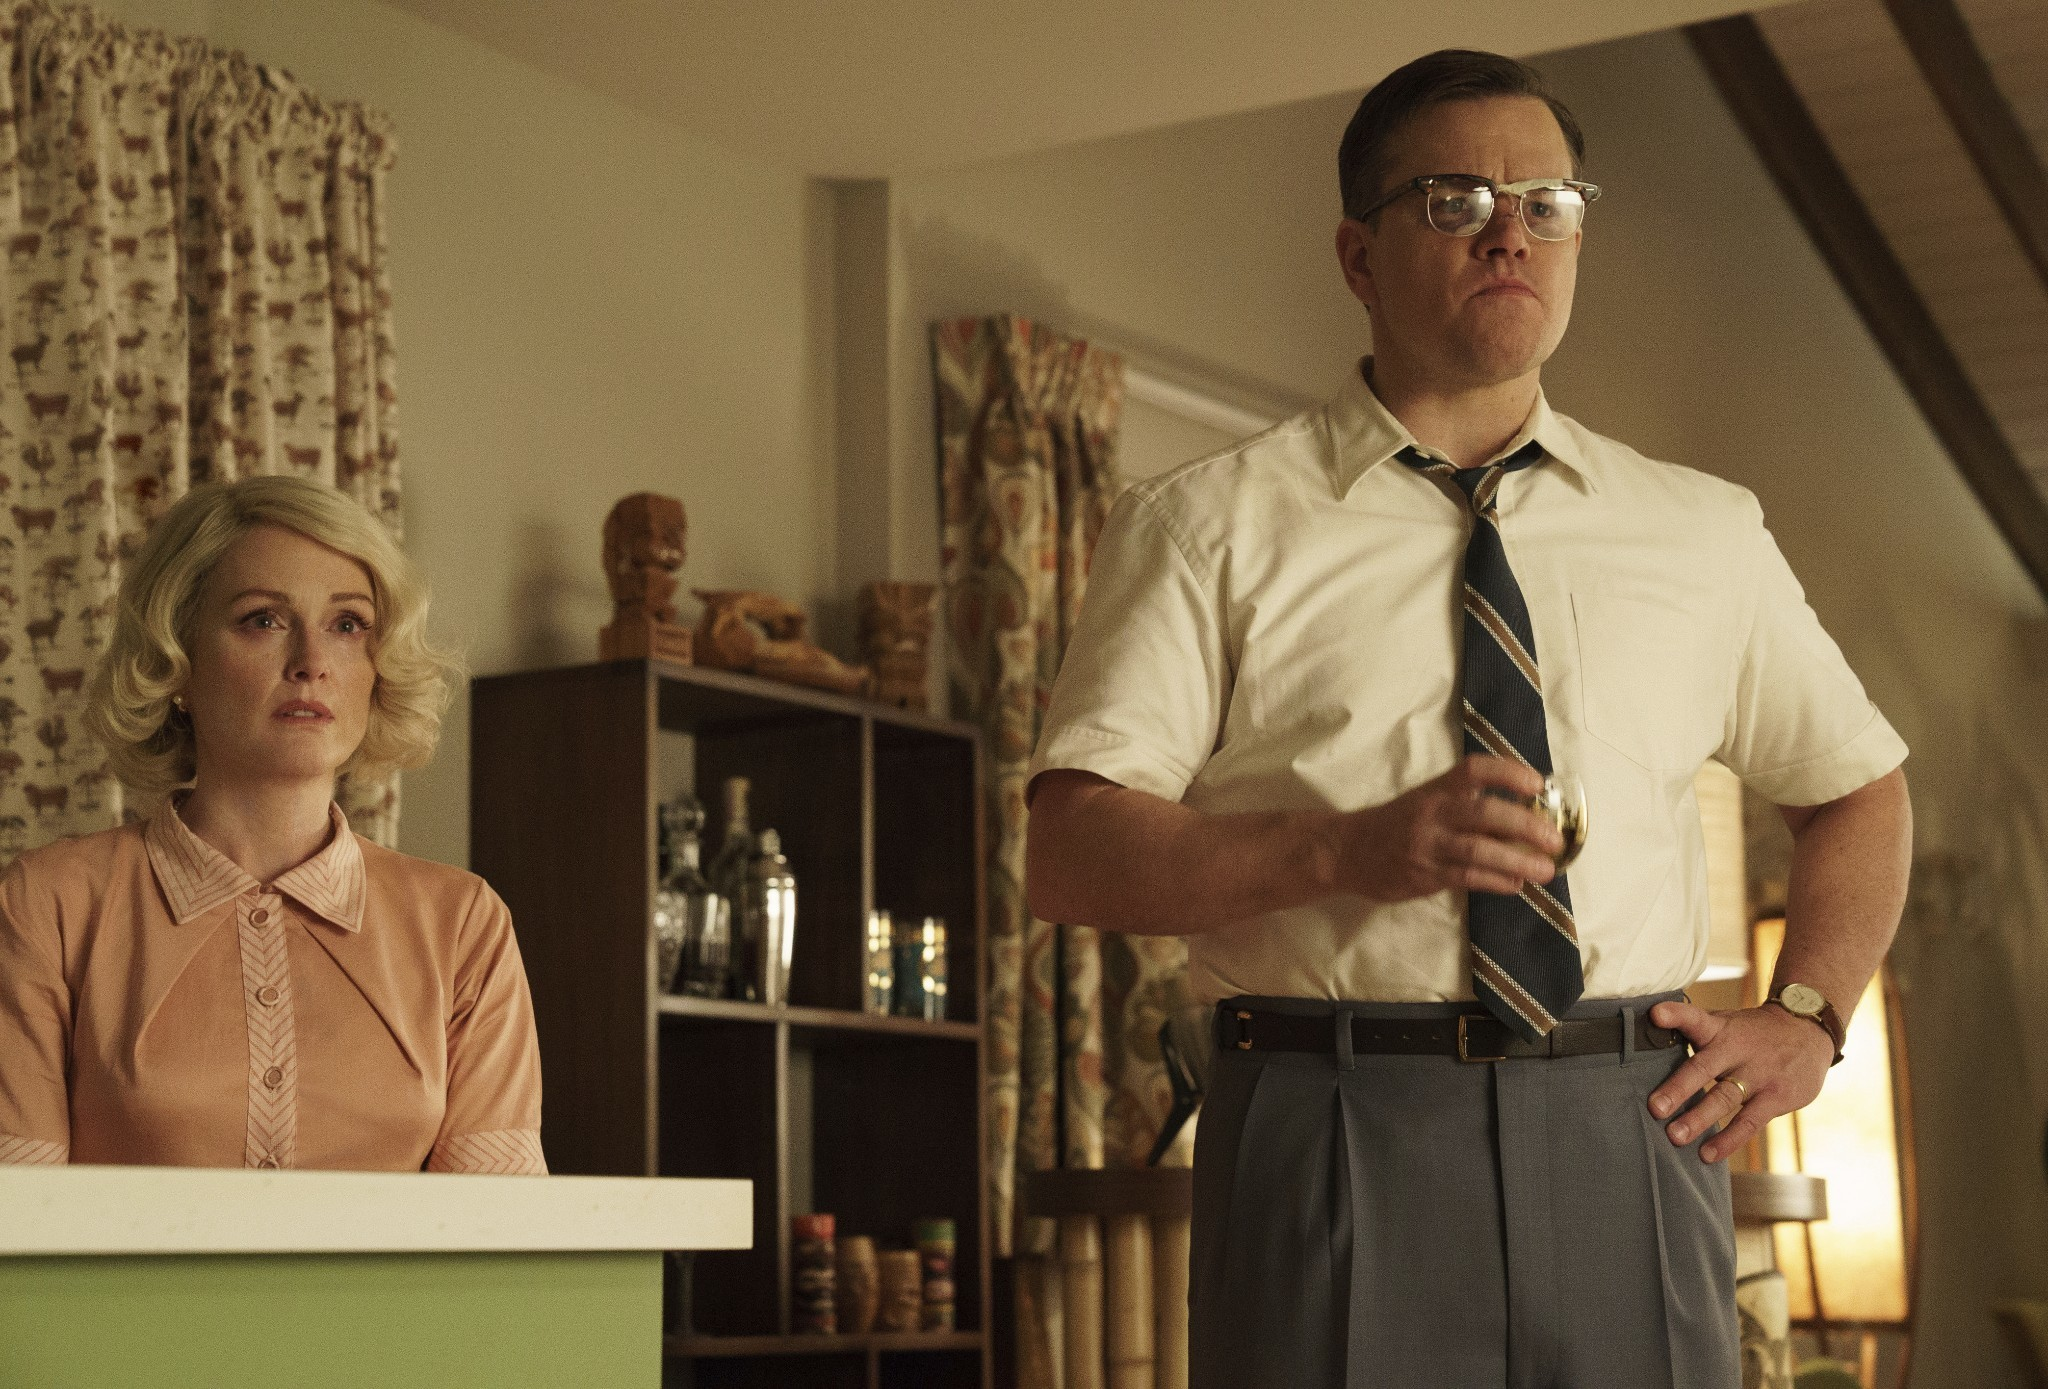 Clooney's 'Suburbicon' tanks, 'Saw' sequel no. 1 with $16.3M